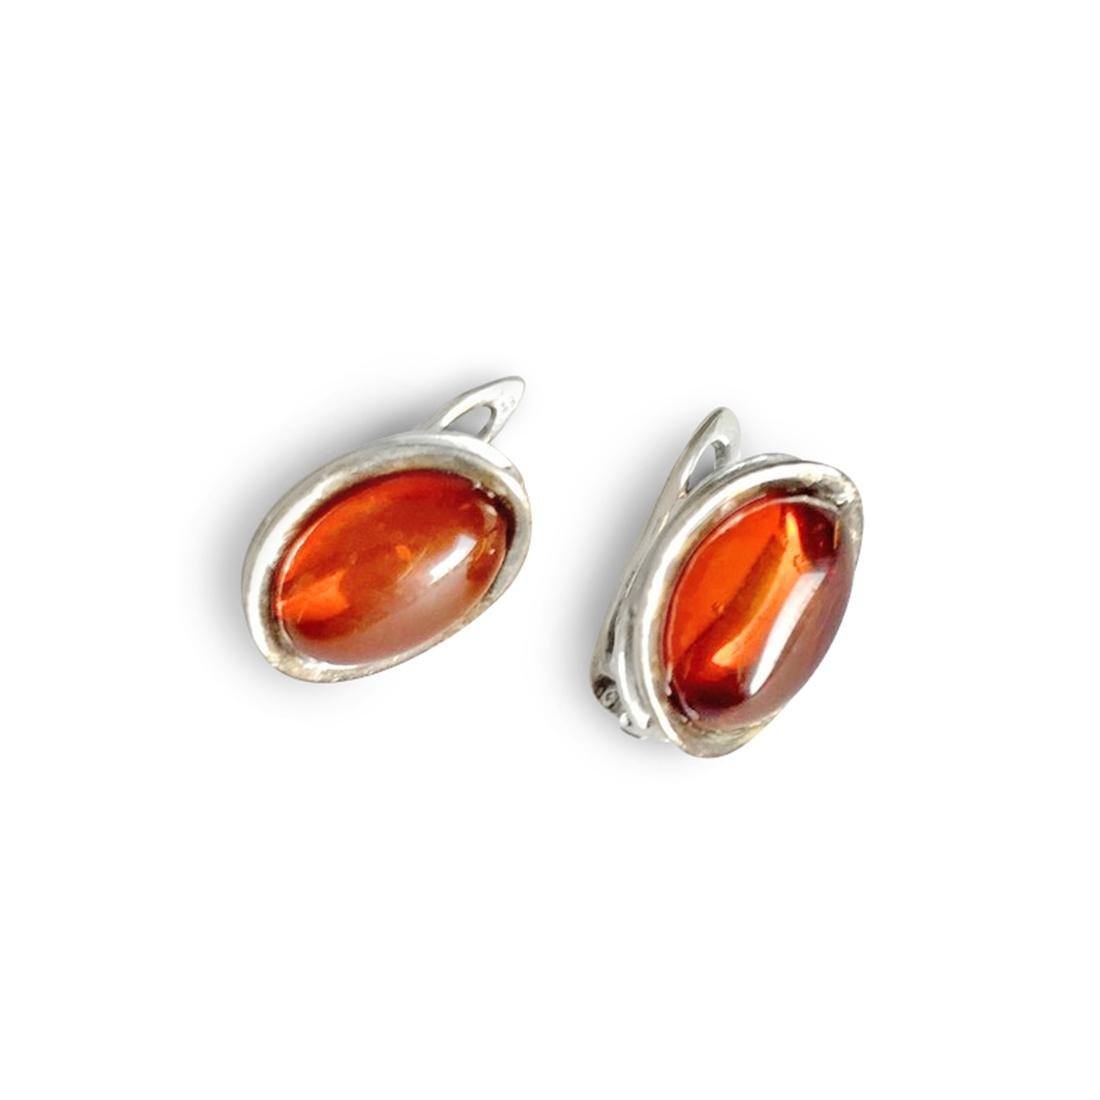 Earrings Sterling silver and Baltic amber, seal